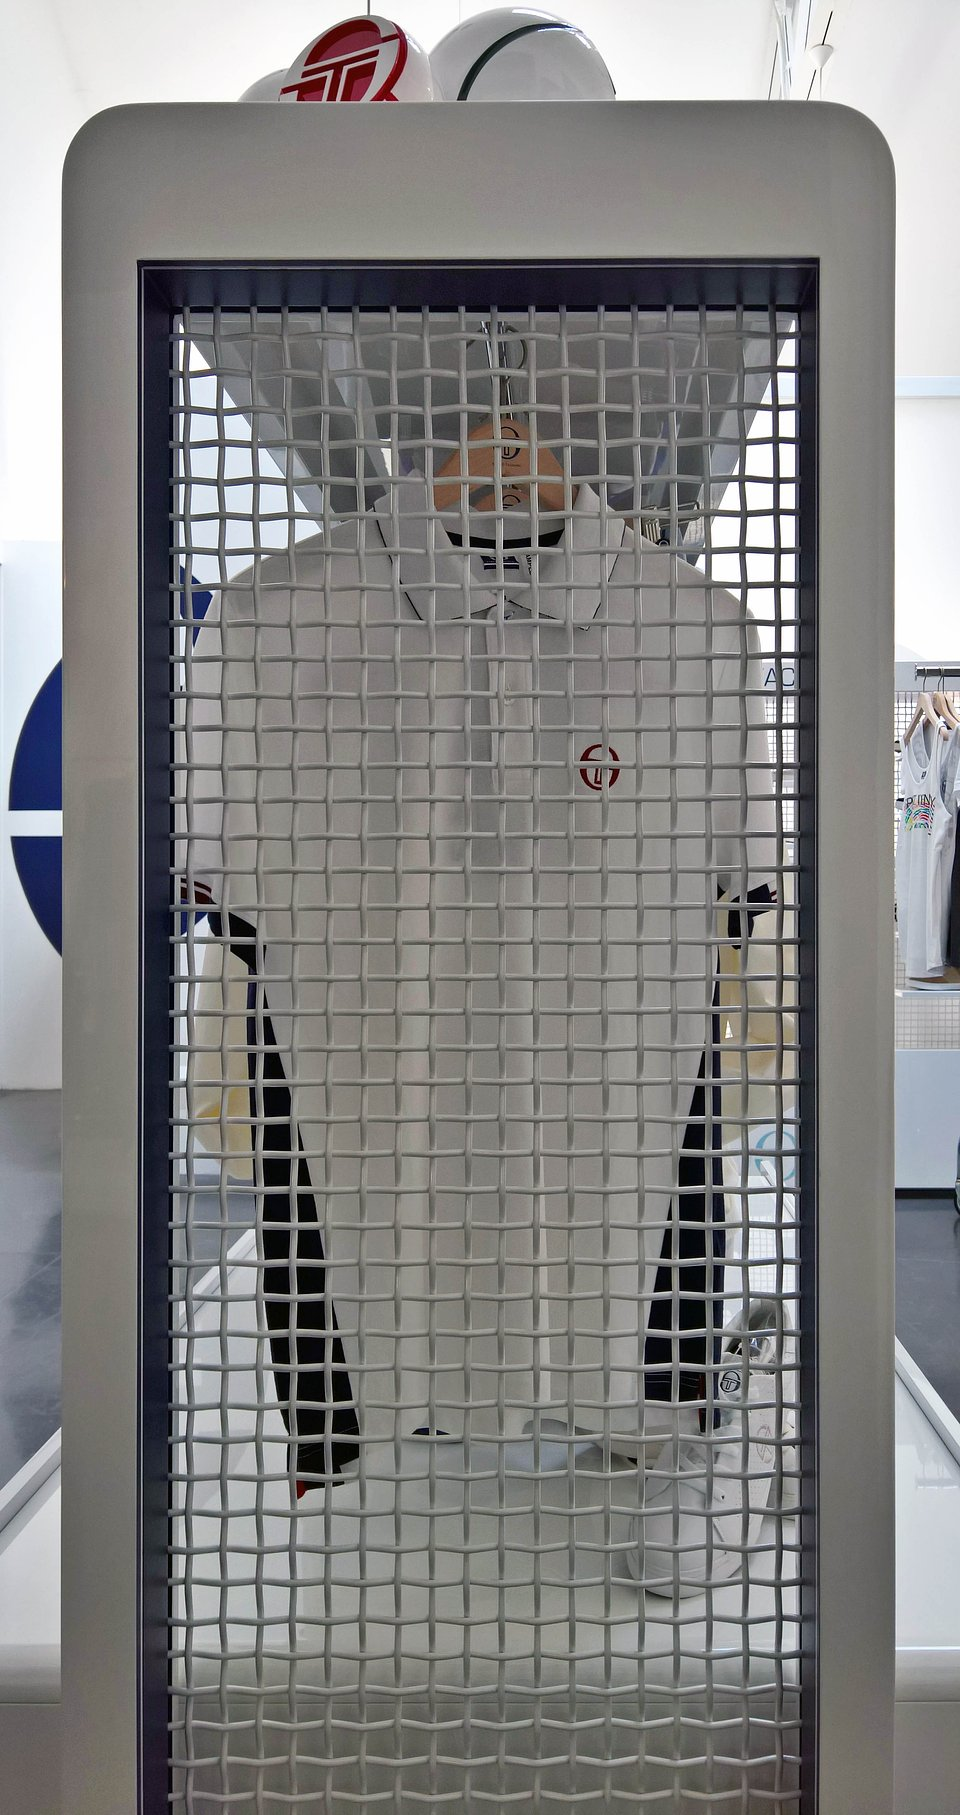 Sergio Tacchini show room by nz.A Studio (16).jpg